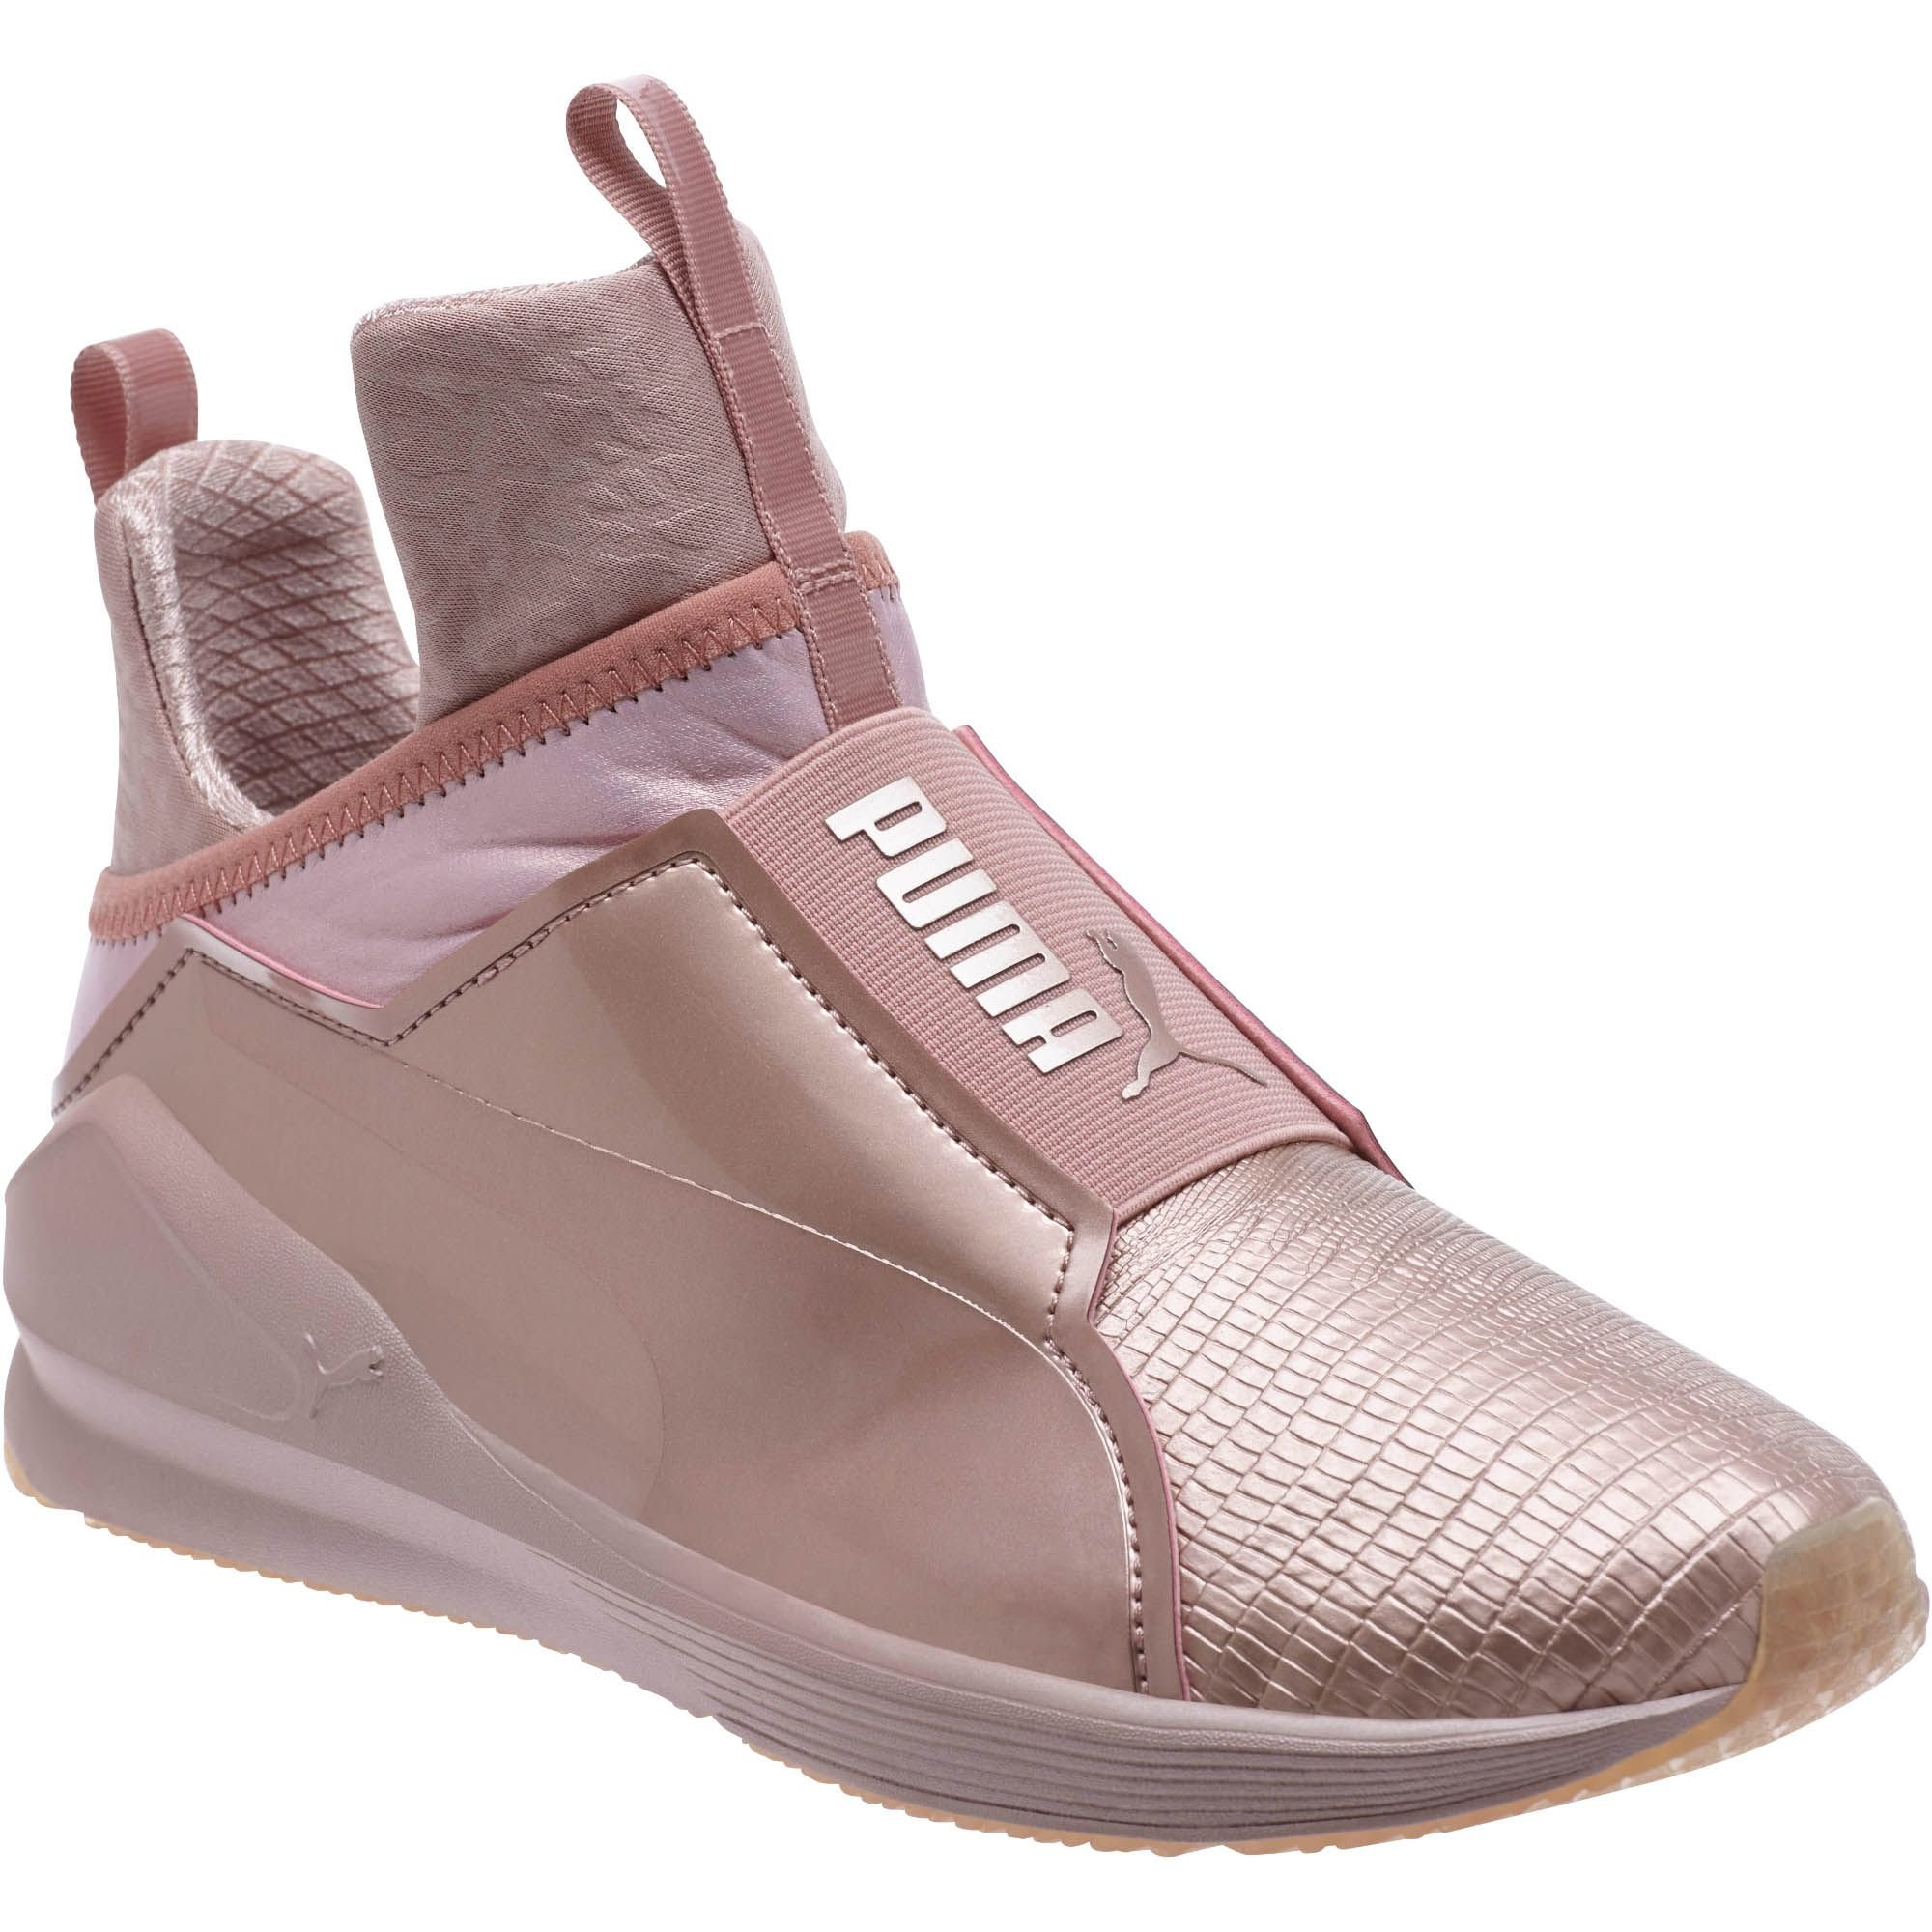 a2273abe5df9 Lyst - PUMA Fierce Metallic Women s Training Shoes in Pink